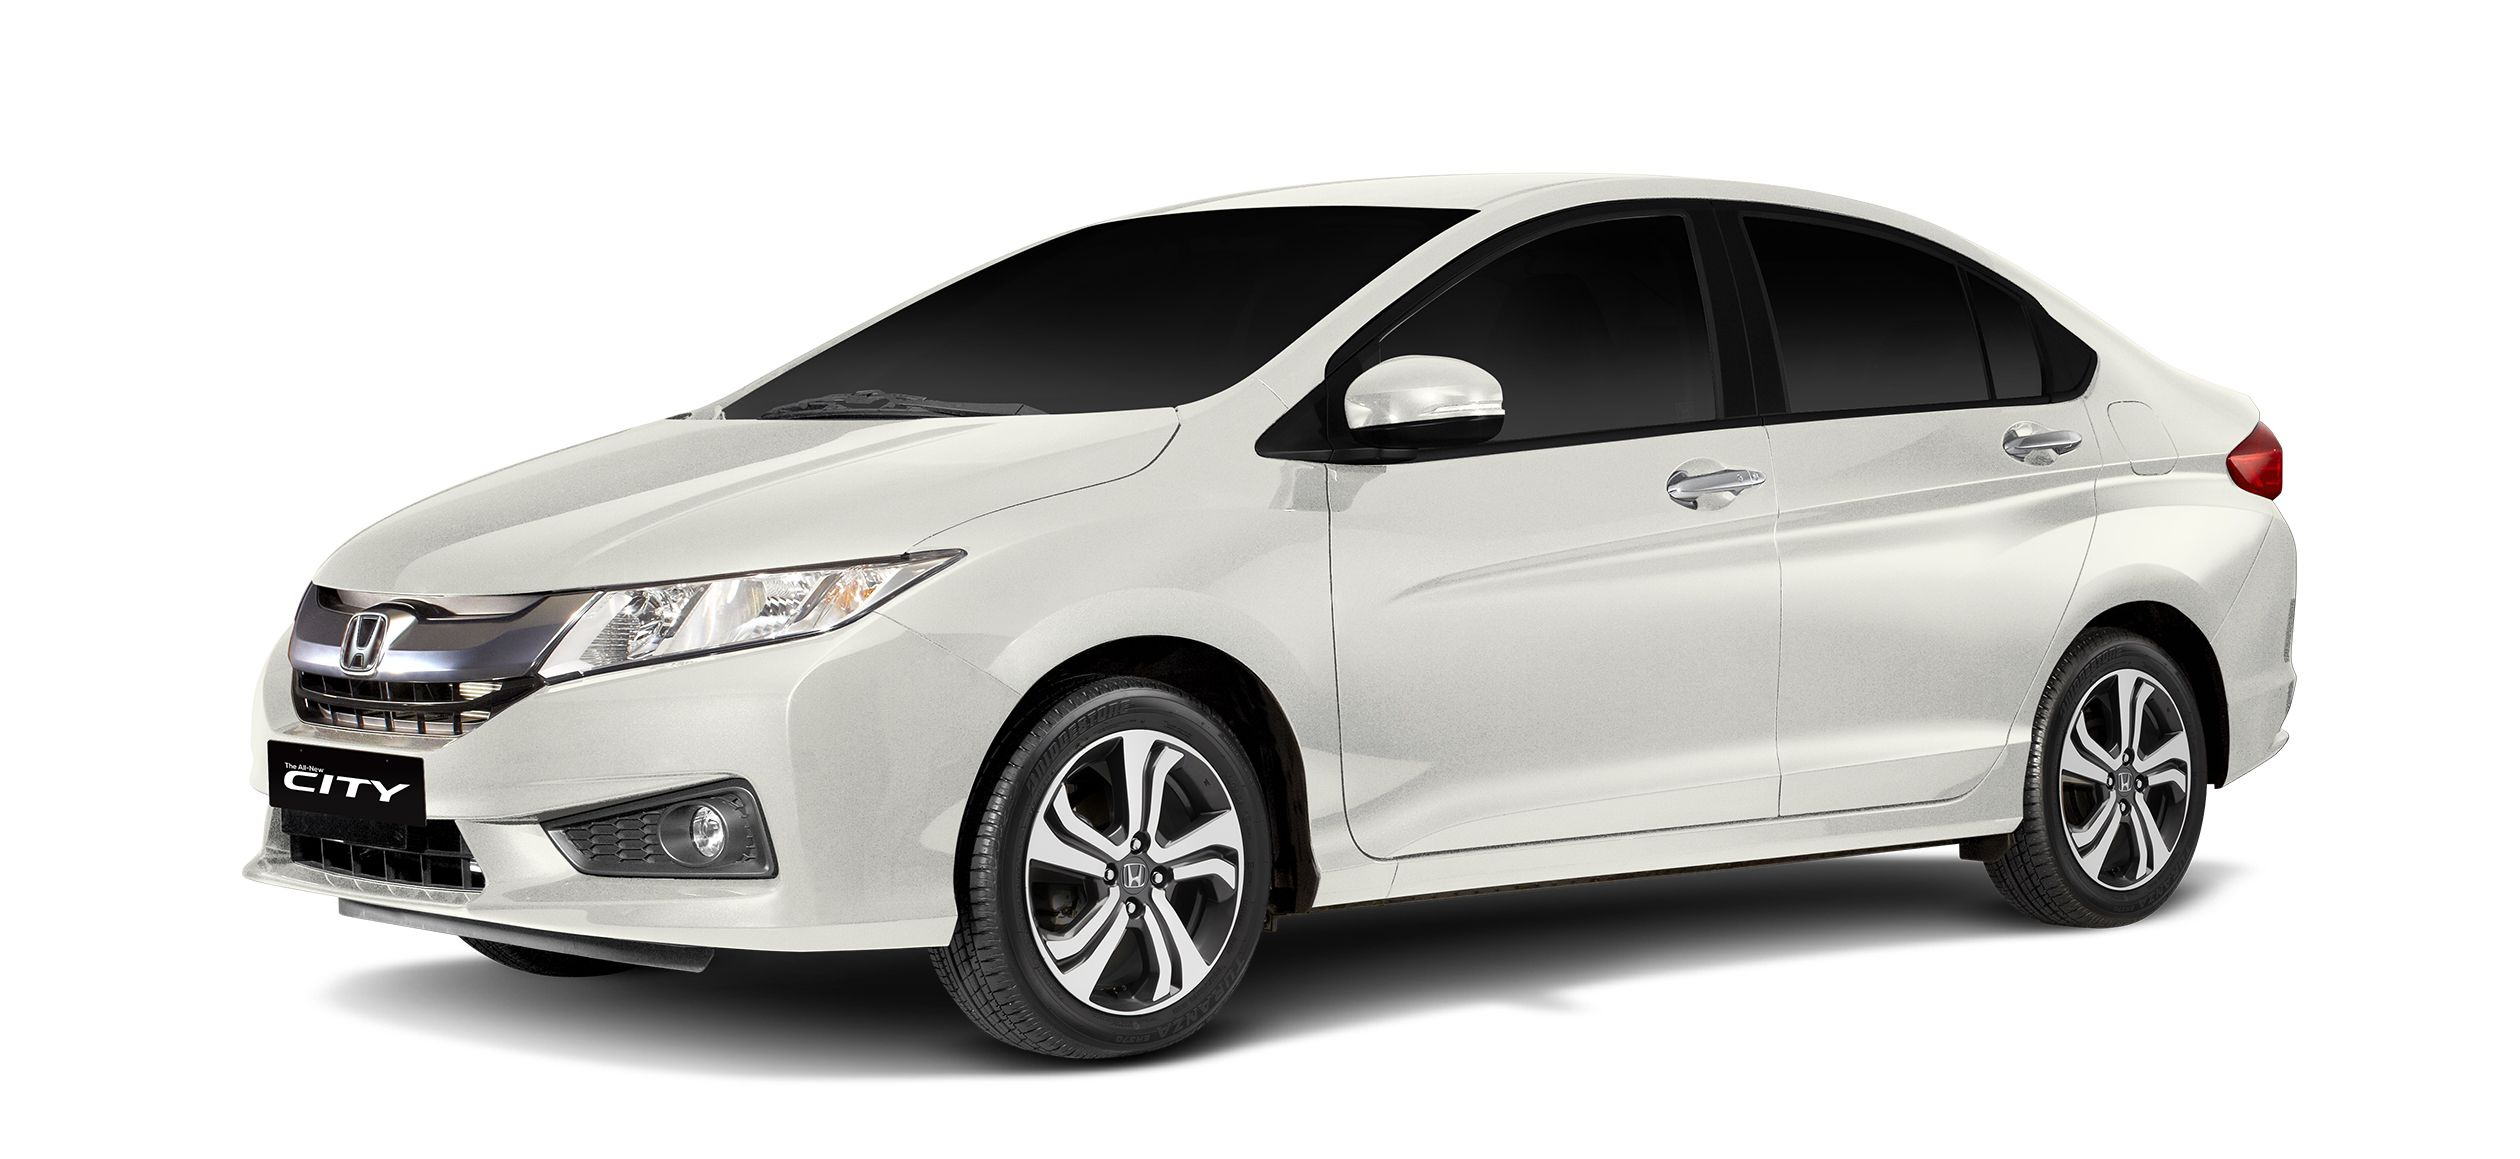 Cars Price Honda Cars Philippines Price List Auto Search Philippines 2016